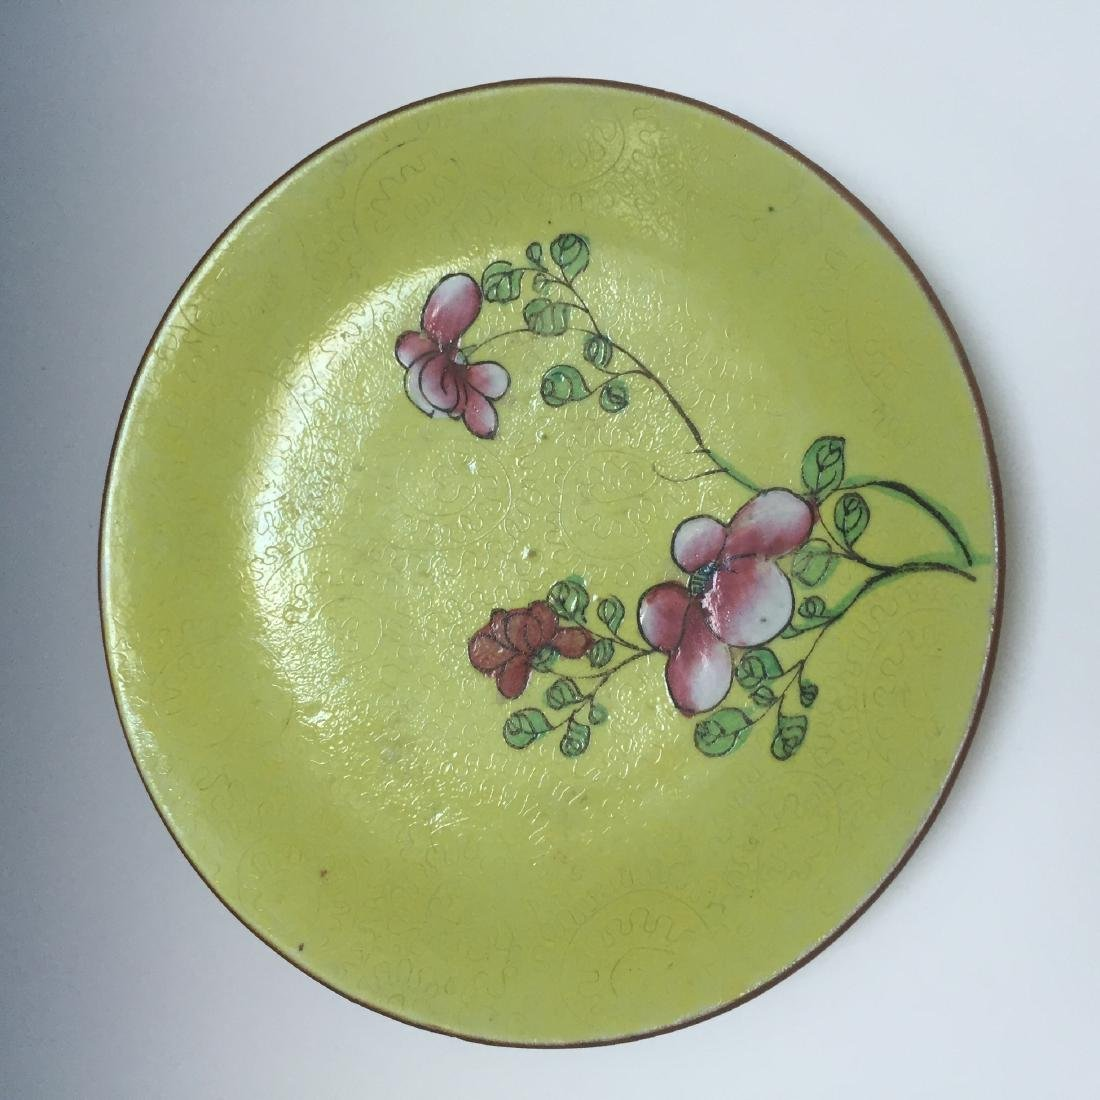 A BUEATIFUL CHINESE ANTIQUE FAMILLE ROSE DISH, 19TH CT - 2